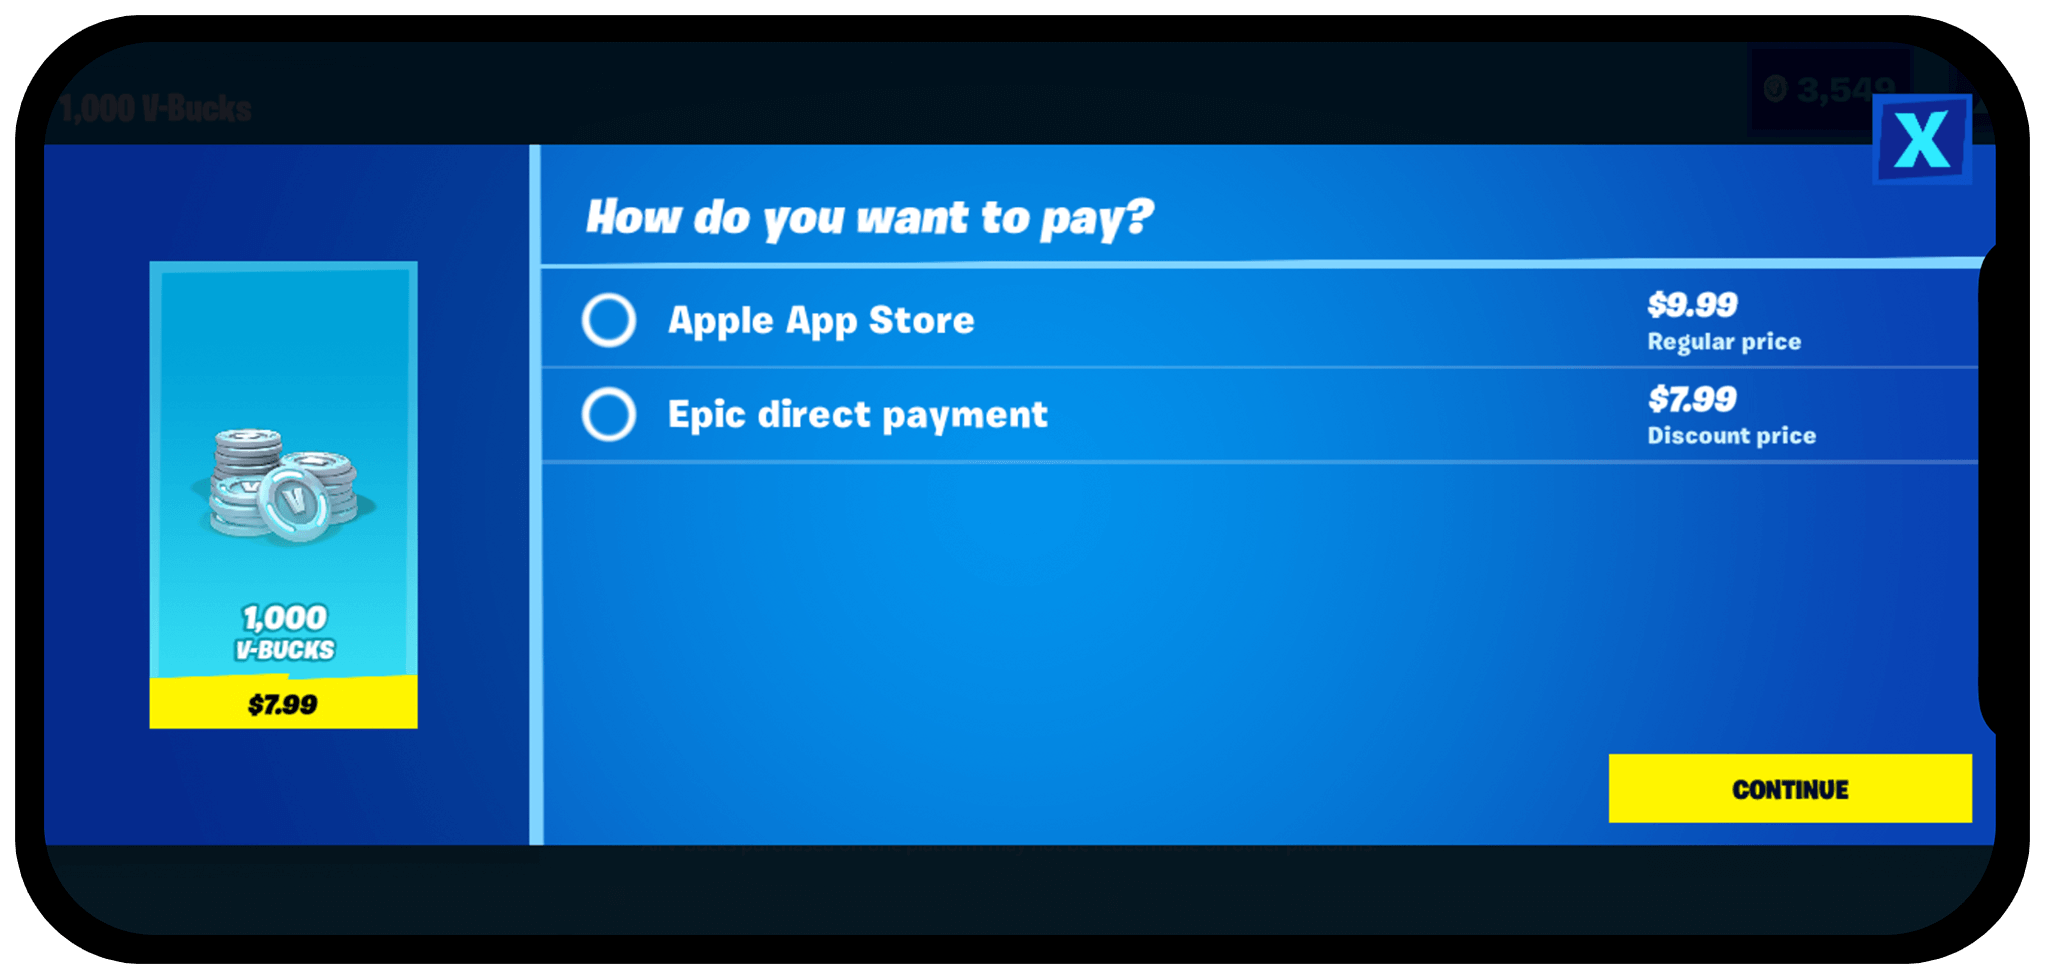 Fortnite In-App Payment vs Apple